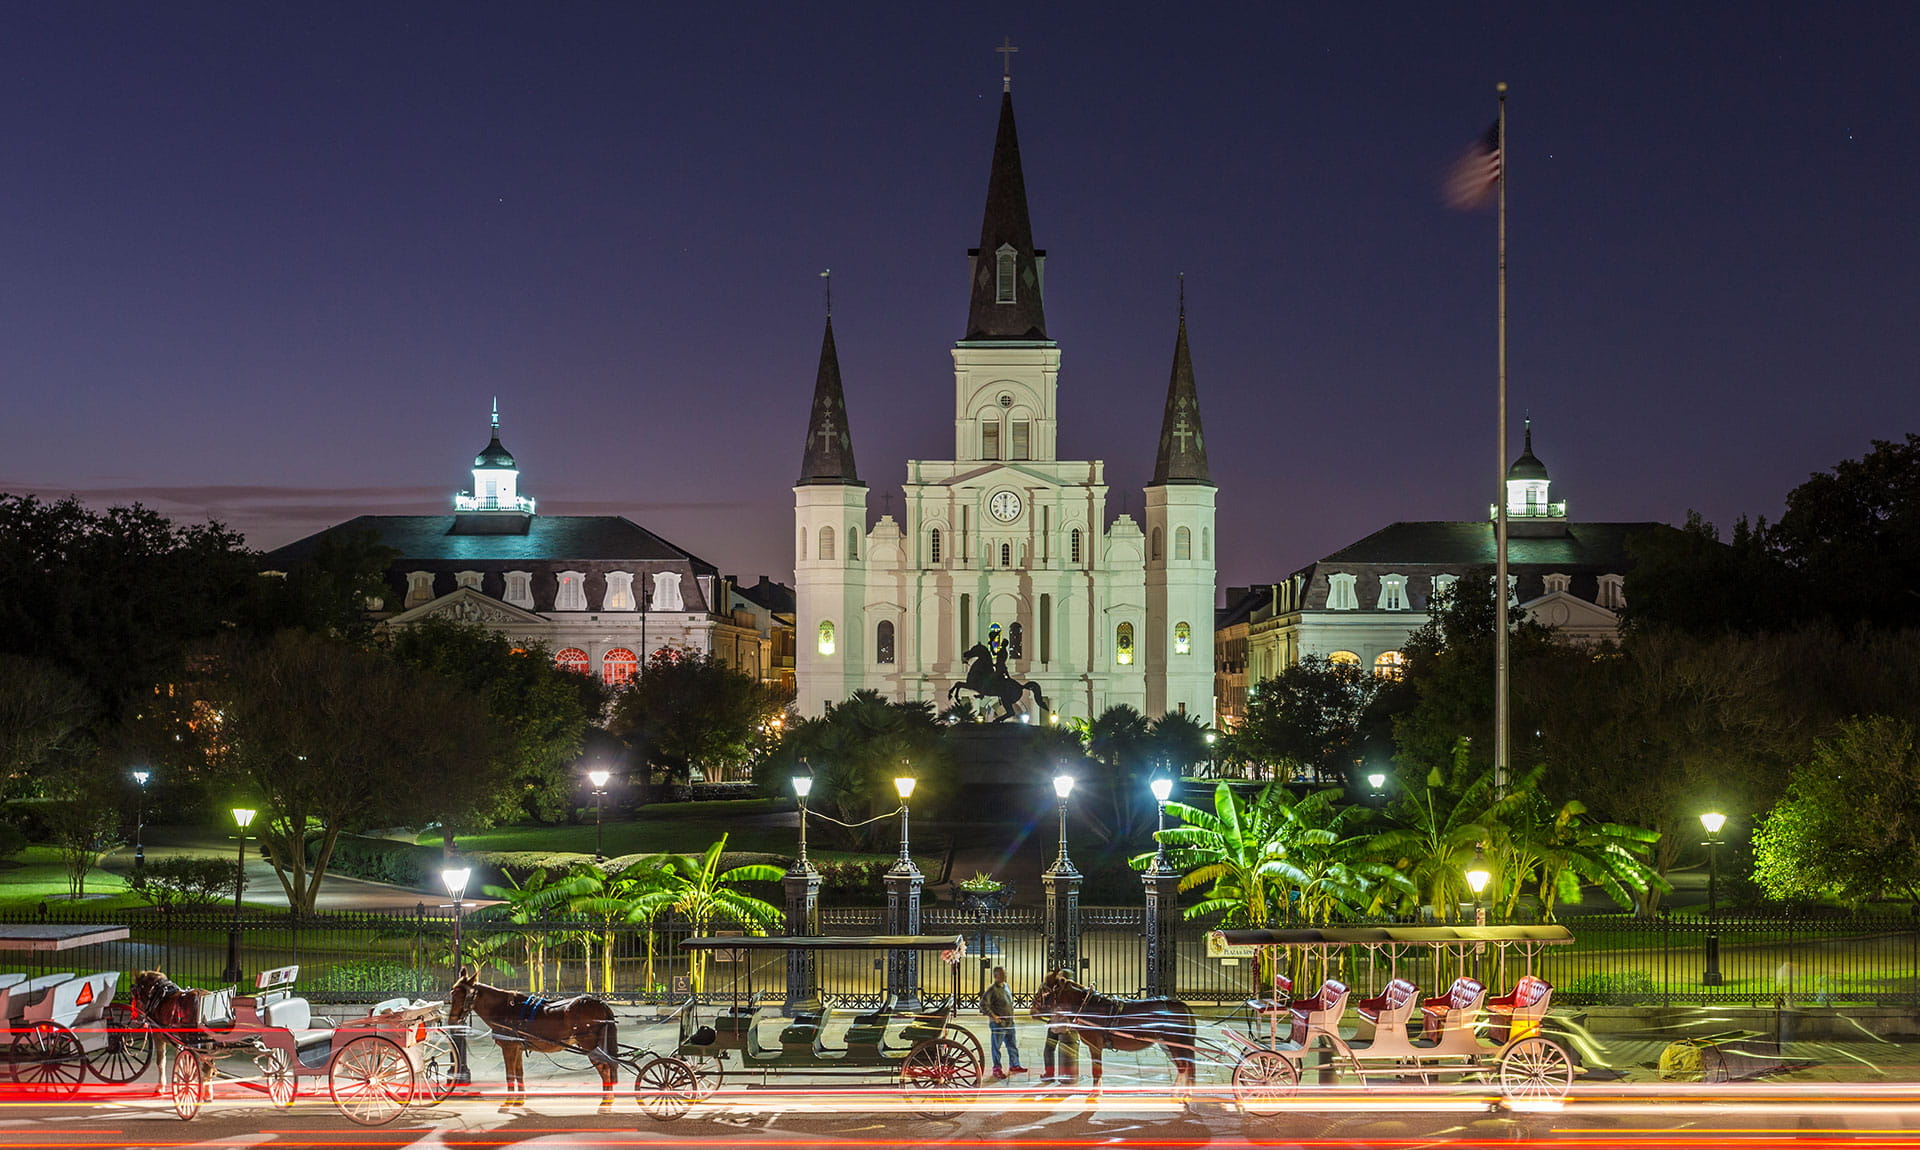 Jackson Square, New Orleans at night